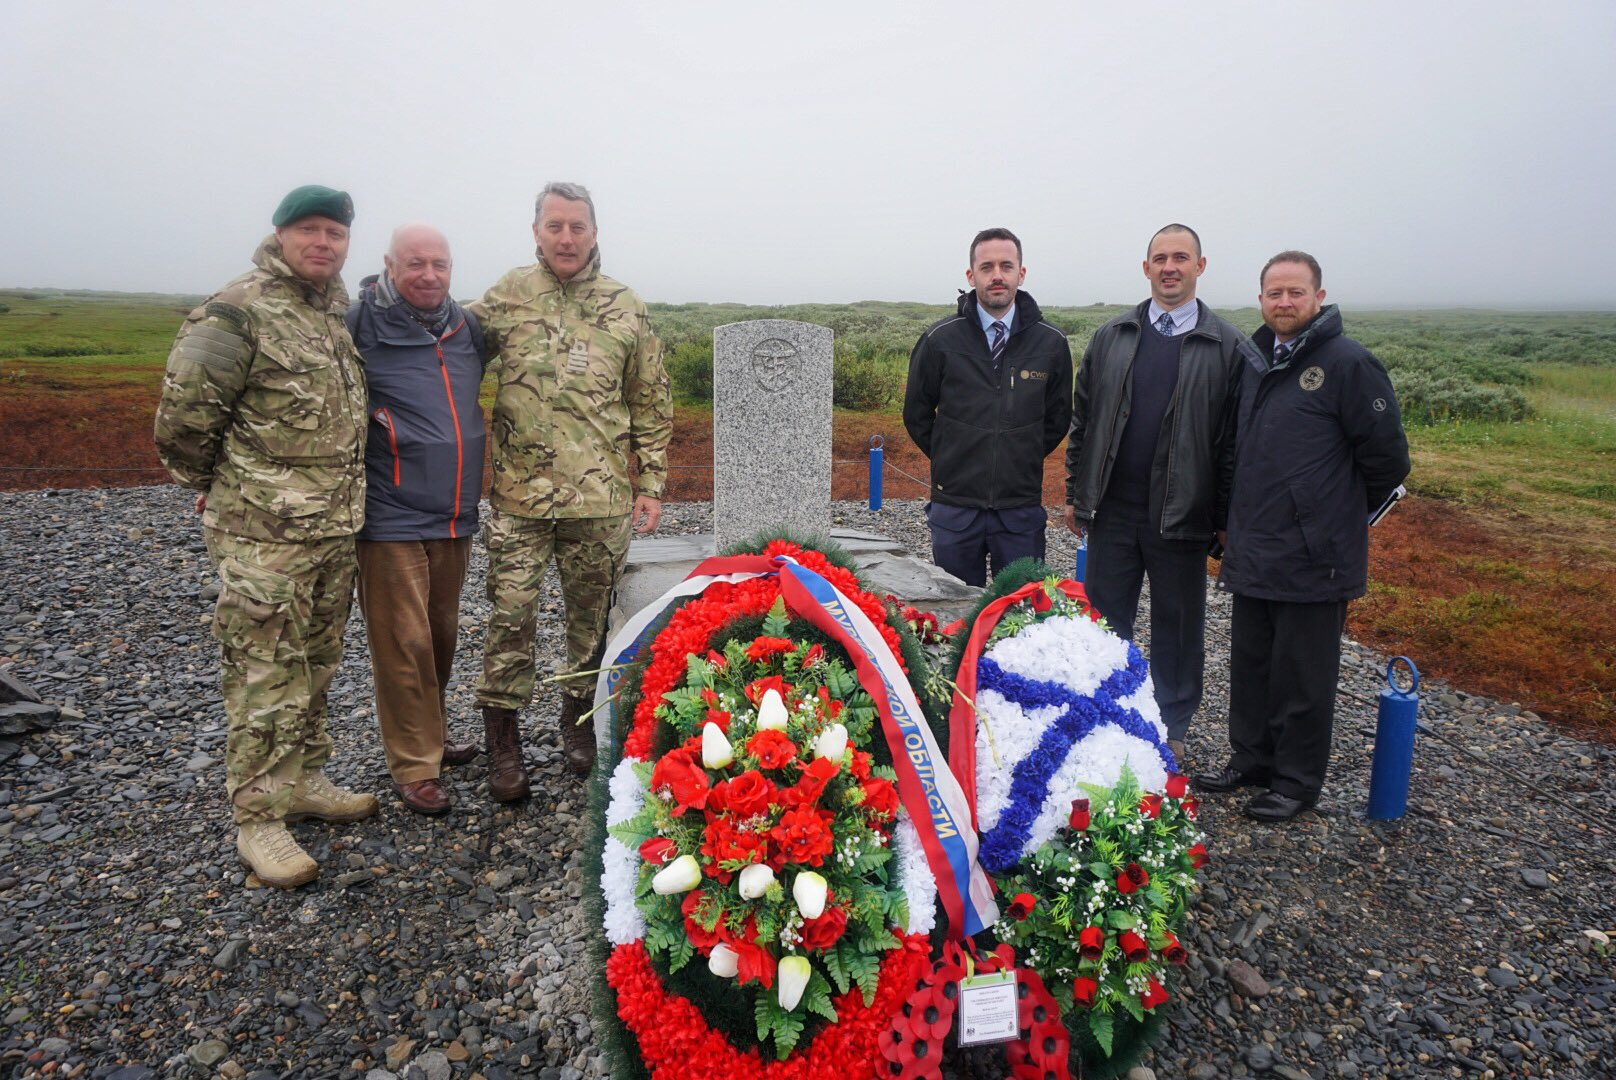 The British Delegation at the grave: left to right - Reverend Ian Wheatley (Chaplain of the Fleet), Andrew Furlong (relative of Seymour Burke), Capt. Christopher Connolly, Misha Titov (Translator – Defence Section)